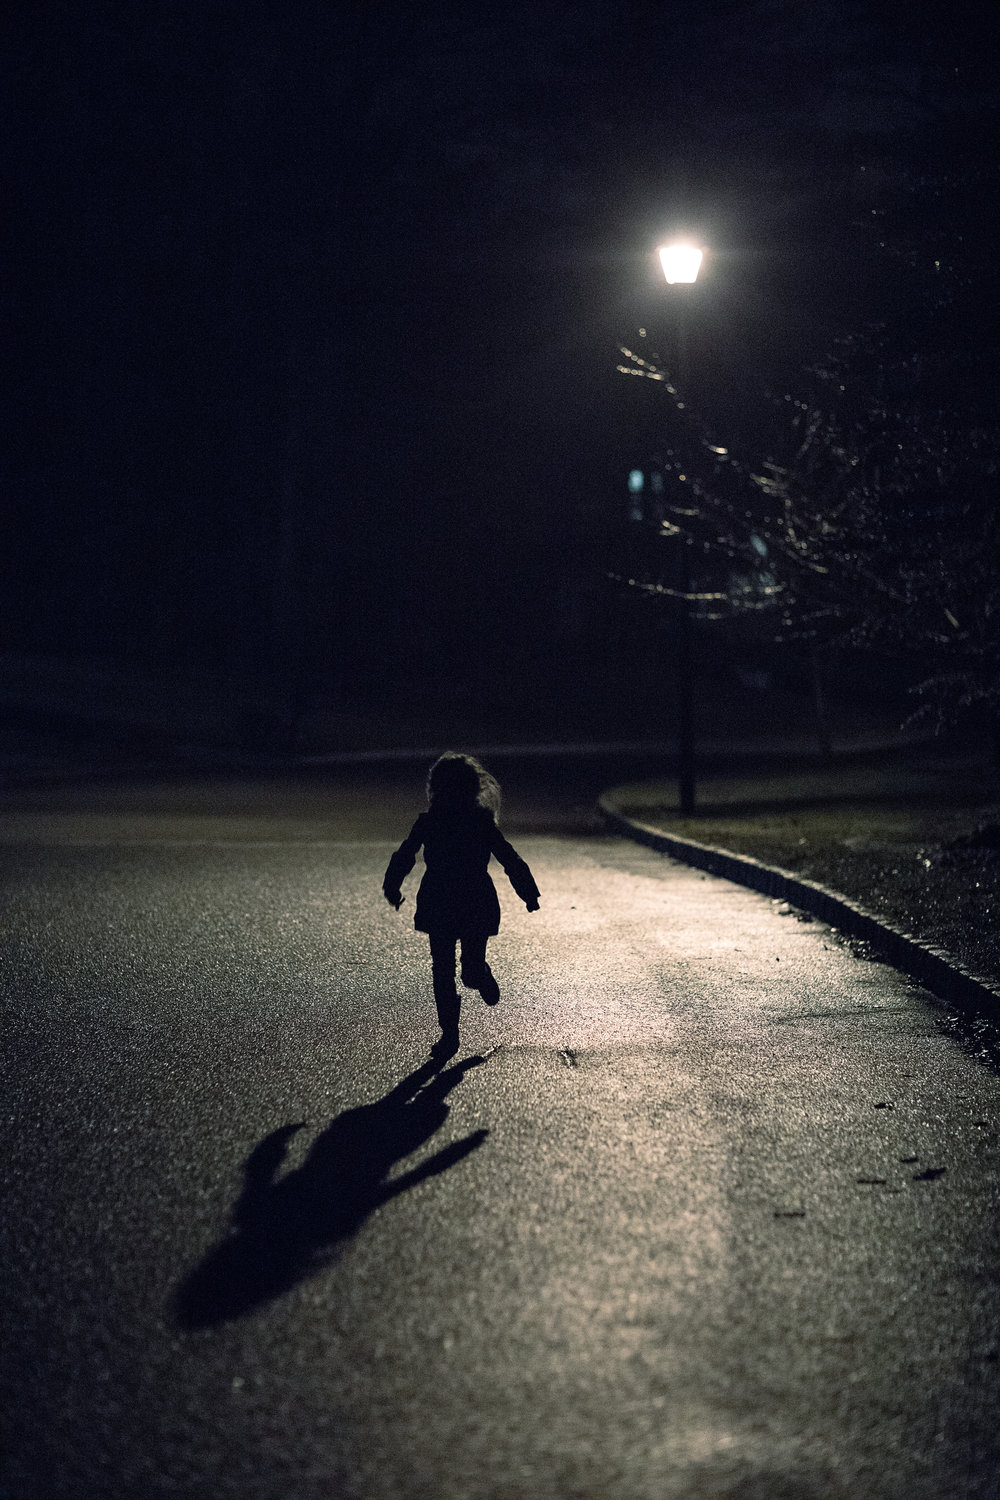 hello-olivia-photography-long-island-photographer-lifestyle-child-outside-dark-lamp-light-low-light-shadow-run.jpg